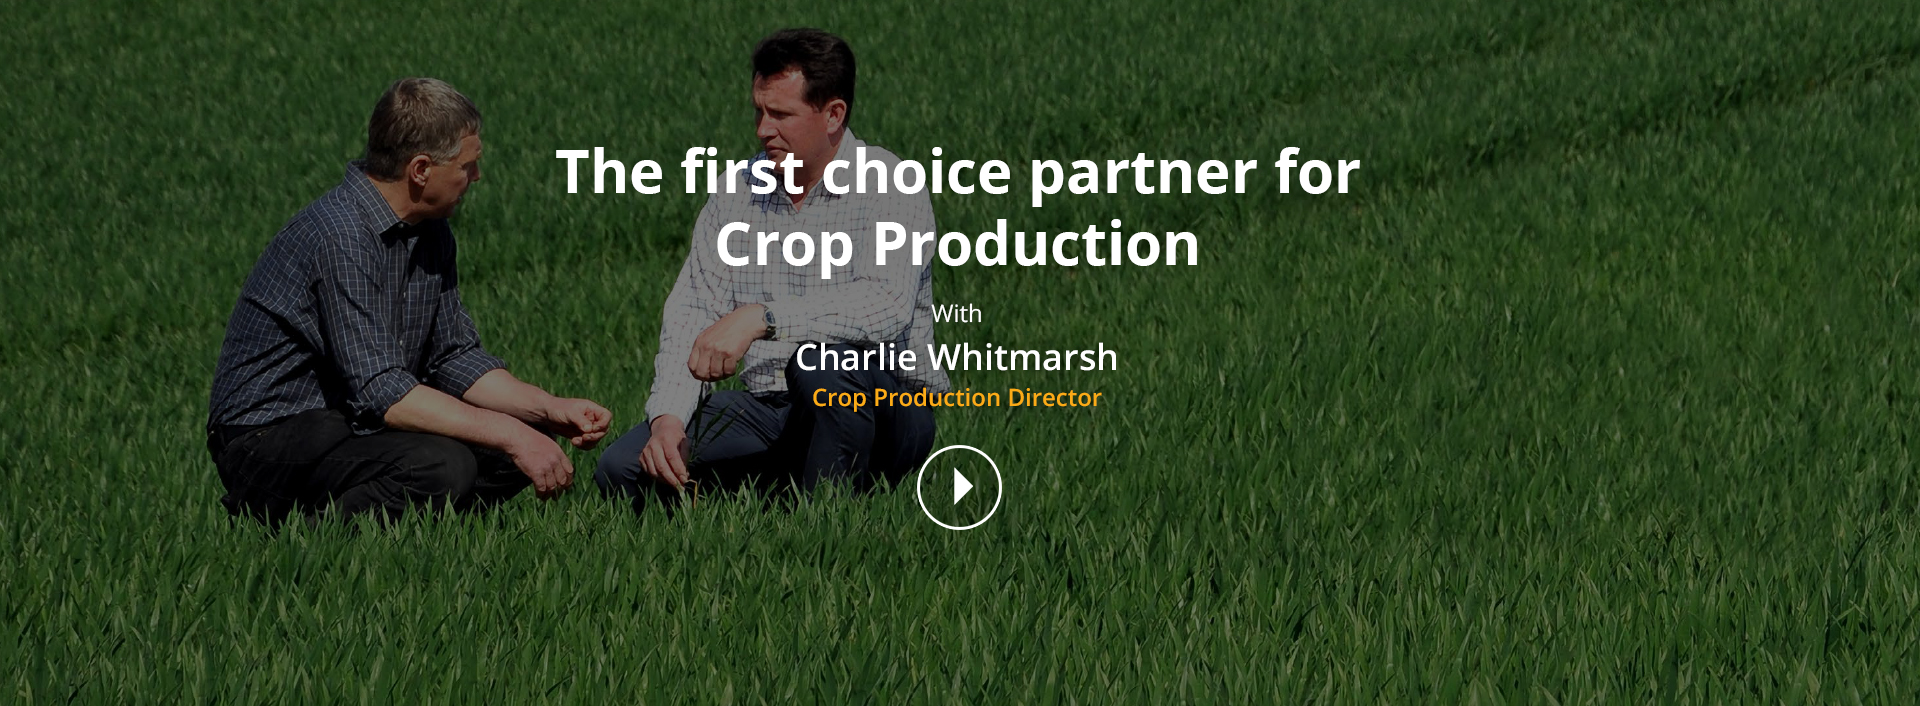 CROP-PRODUCTION HERO